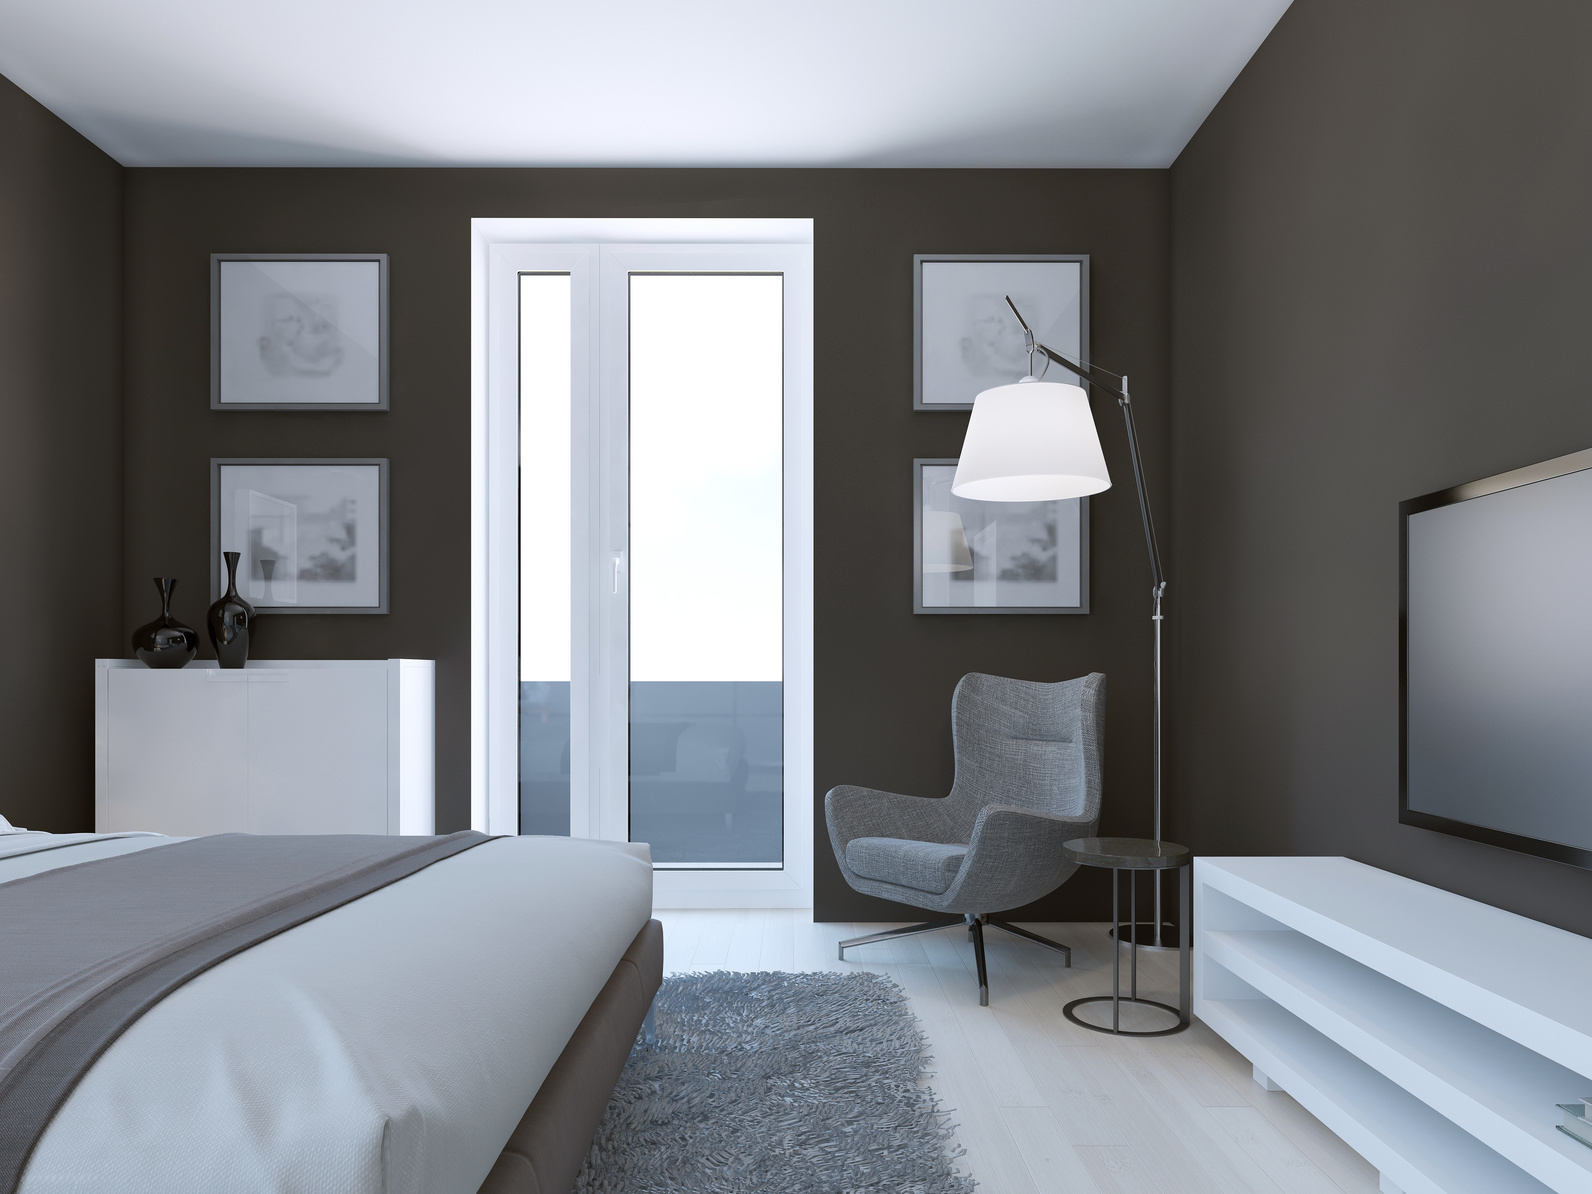 chambre peinture beautiful indogatecom peinture gris. Black Bedroom Furniture Sets. Home Design Ideas